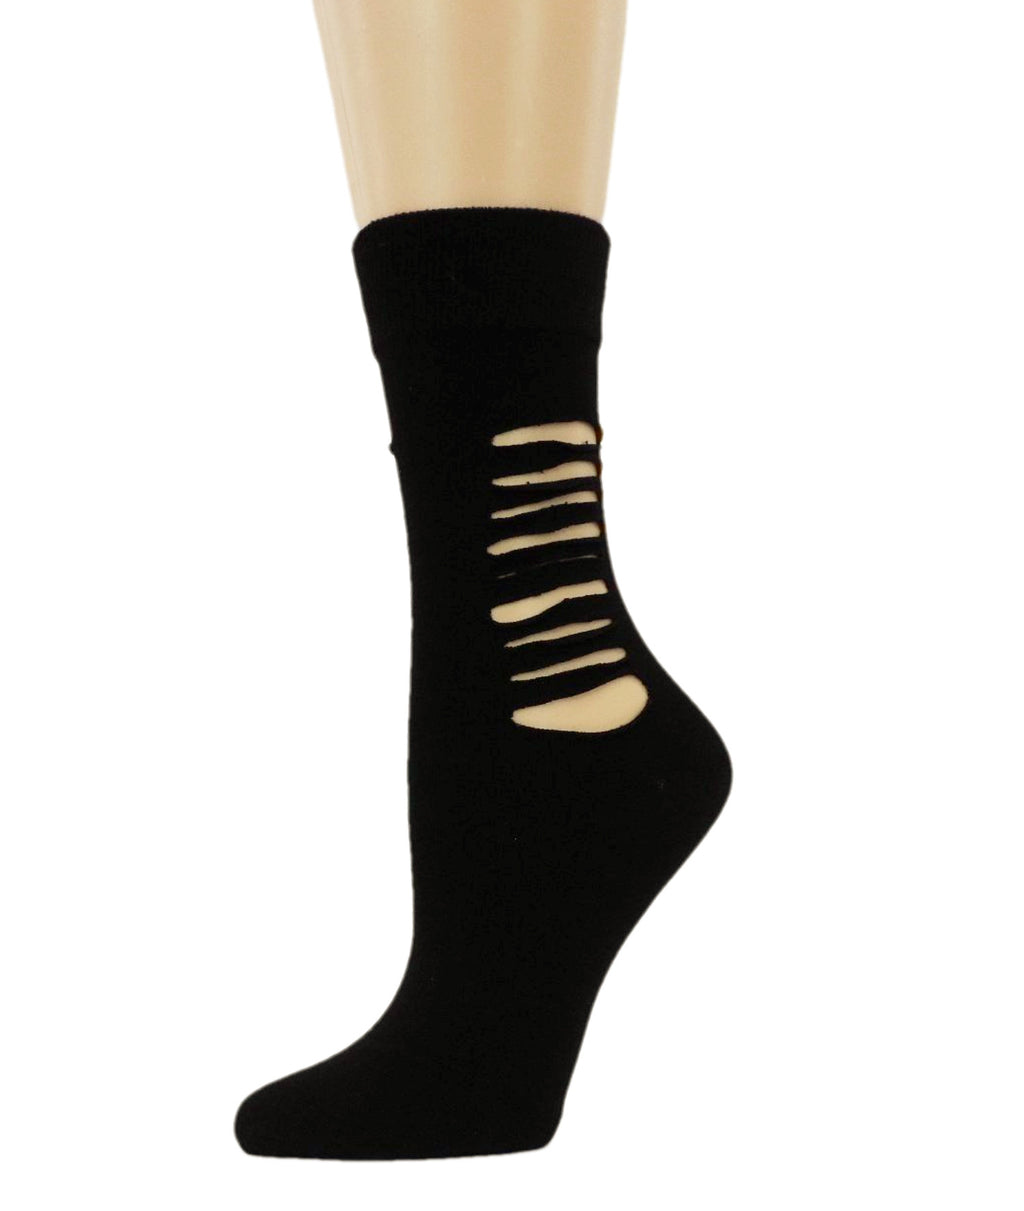 Ripped Midnight Black Cotton Socks